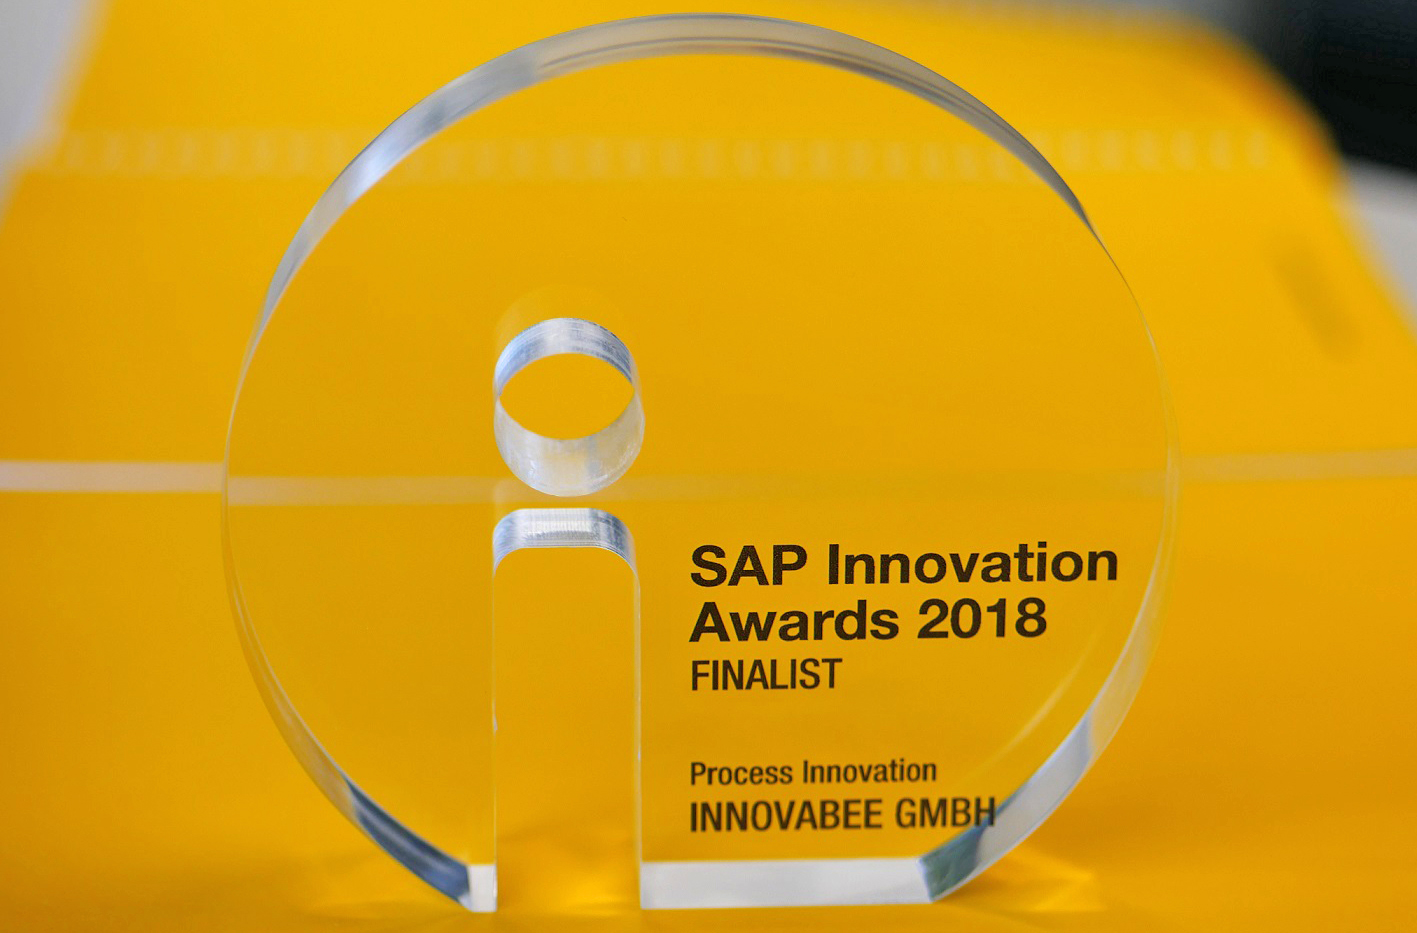 Blog Foto SAP Quality Award - Sonnentracht im Finale bei den SAP Innovation Awards